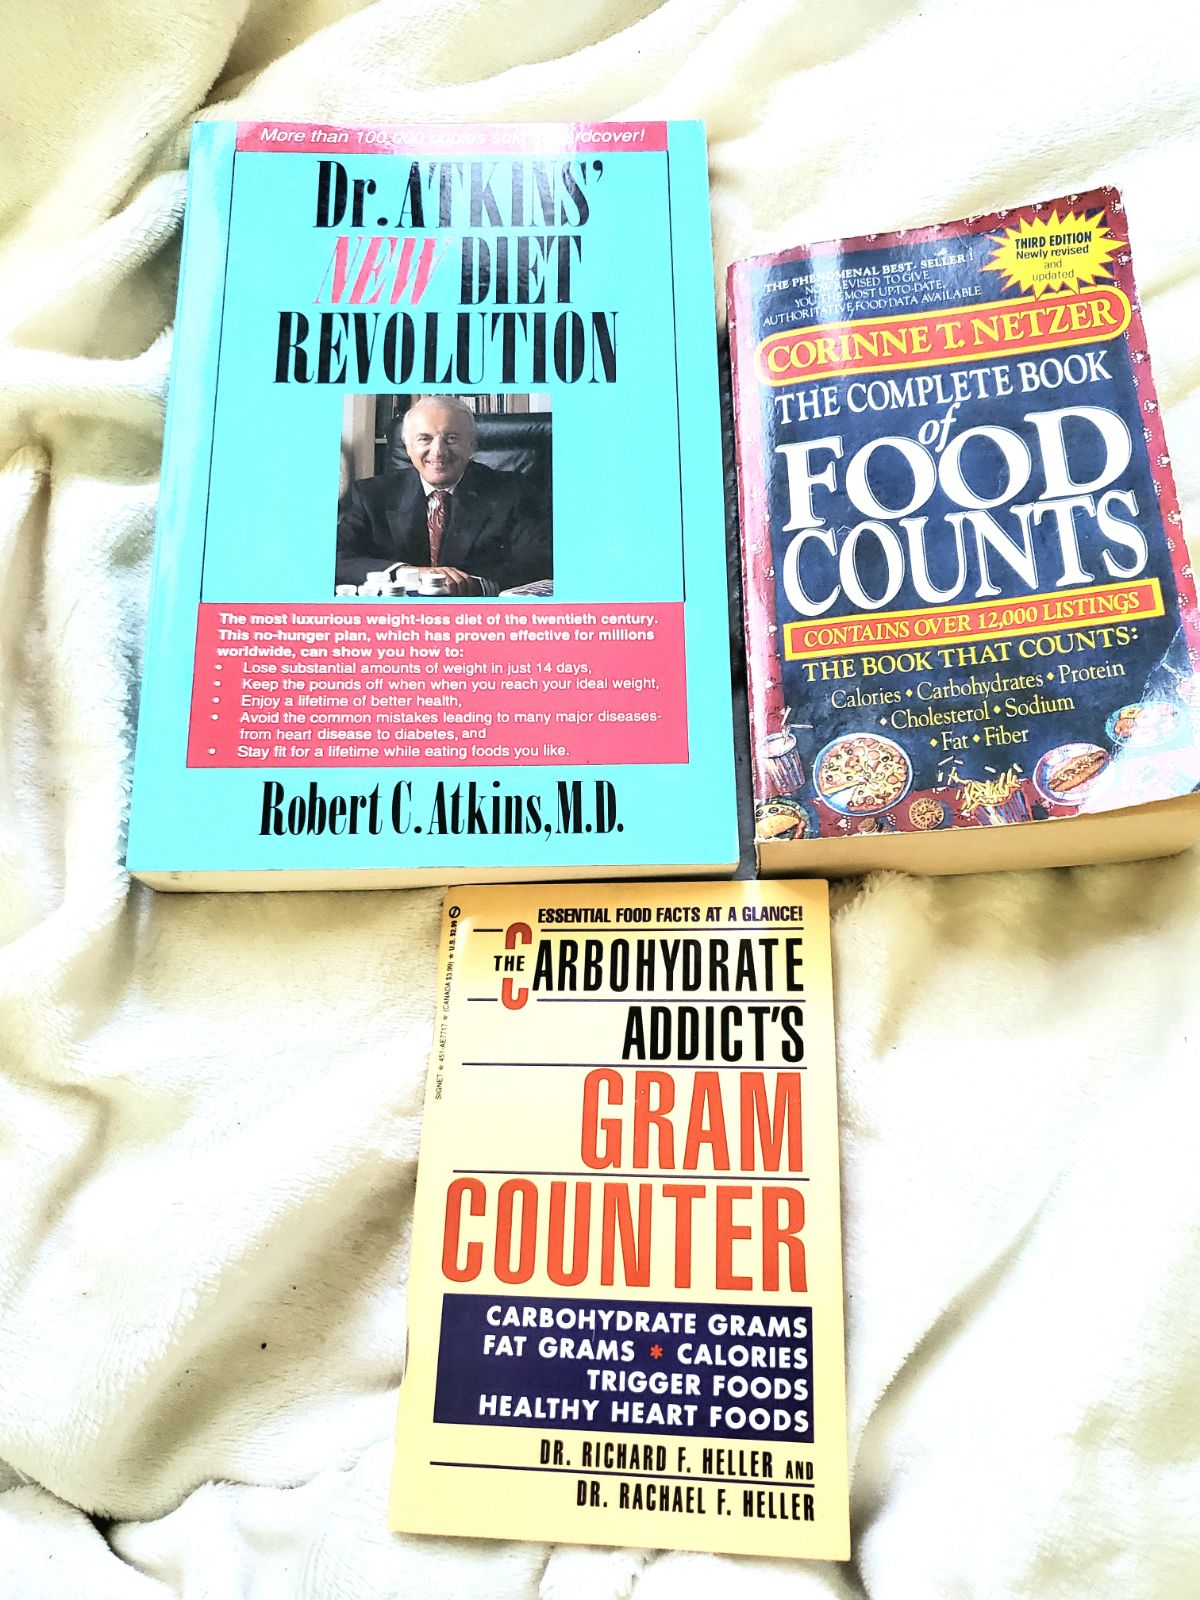 3 diet food books Adkins carbohydrates